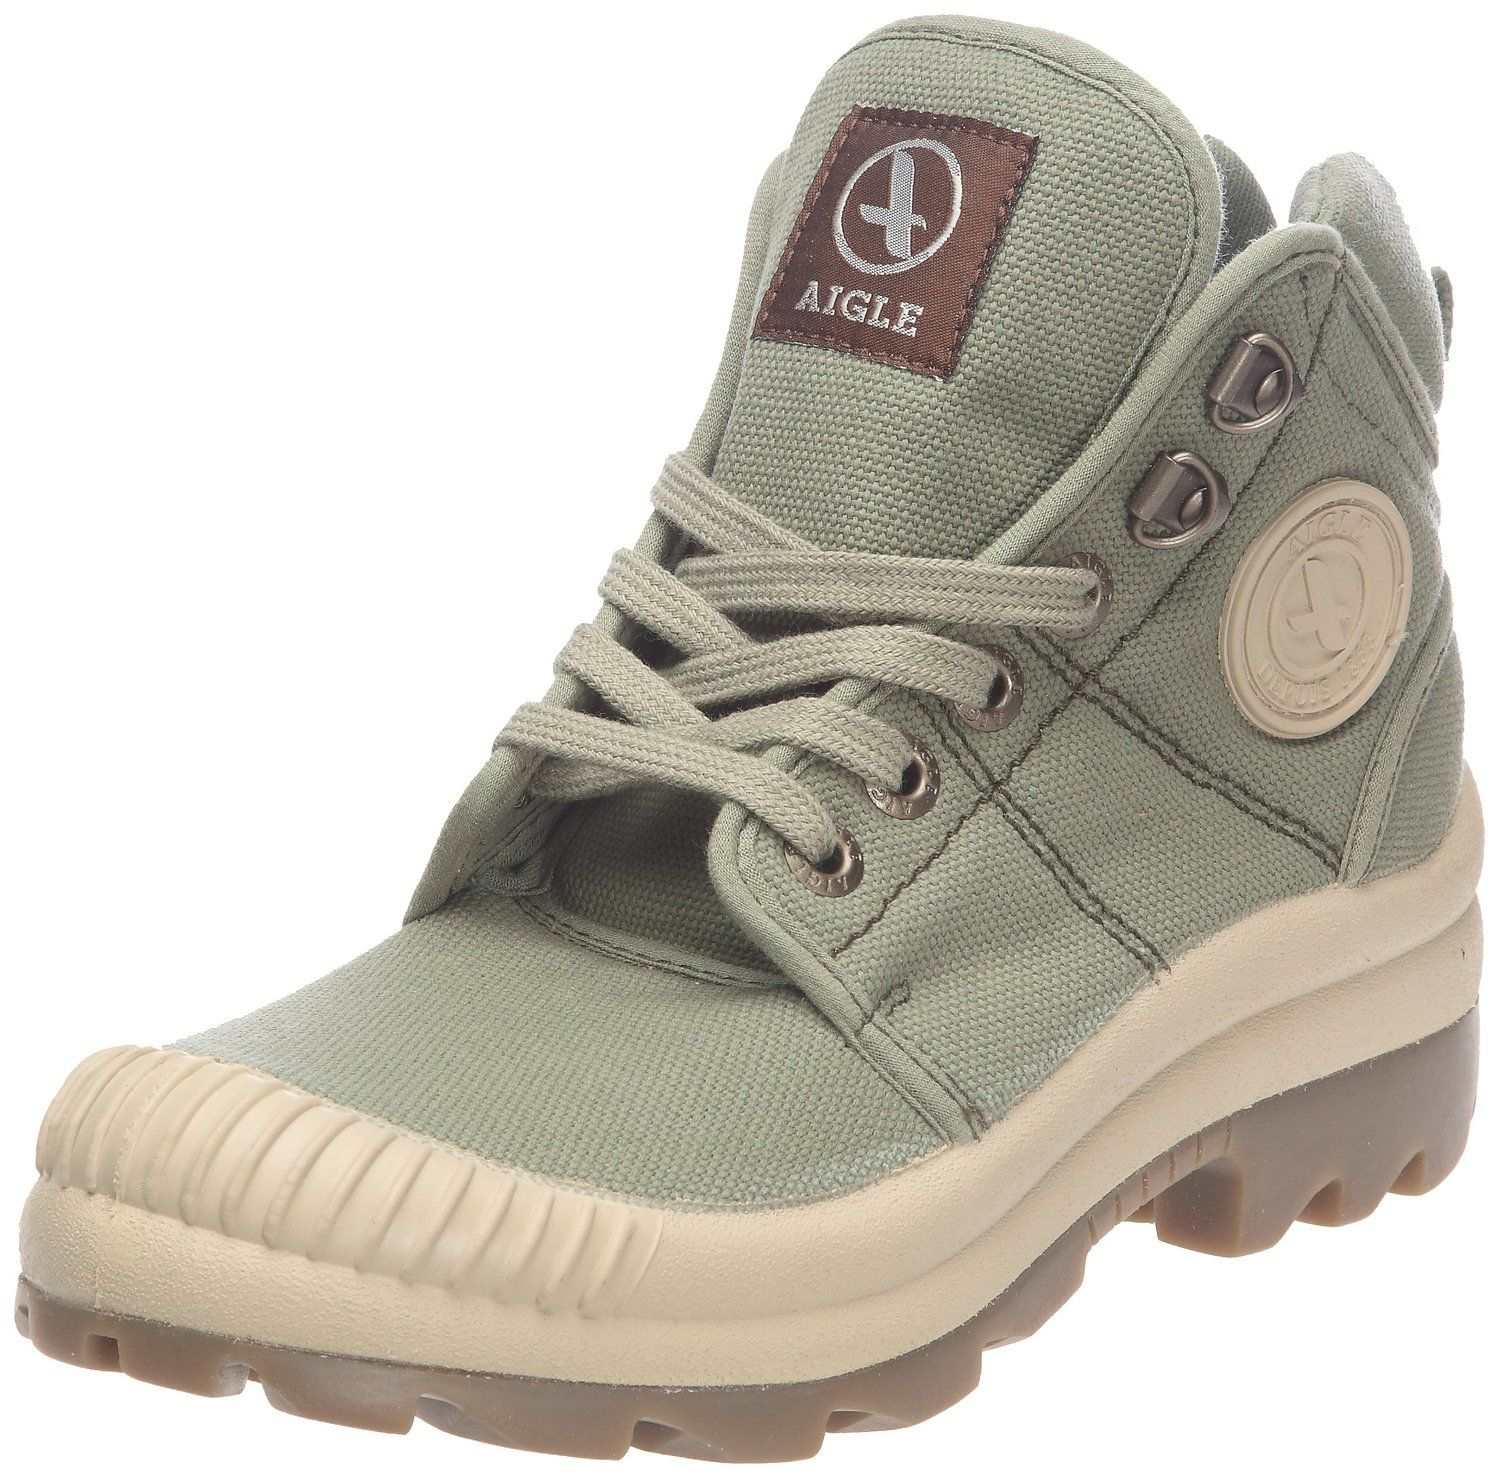 ac11c534159 Aigle Womens Ténéré 2 W walking and hiking boots: Amazon.co.uk ...